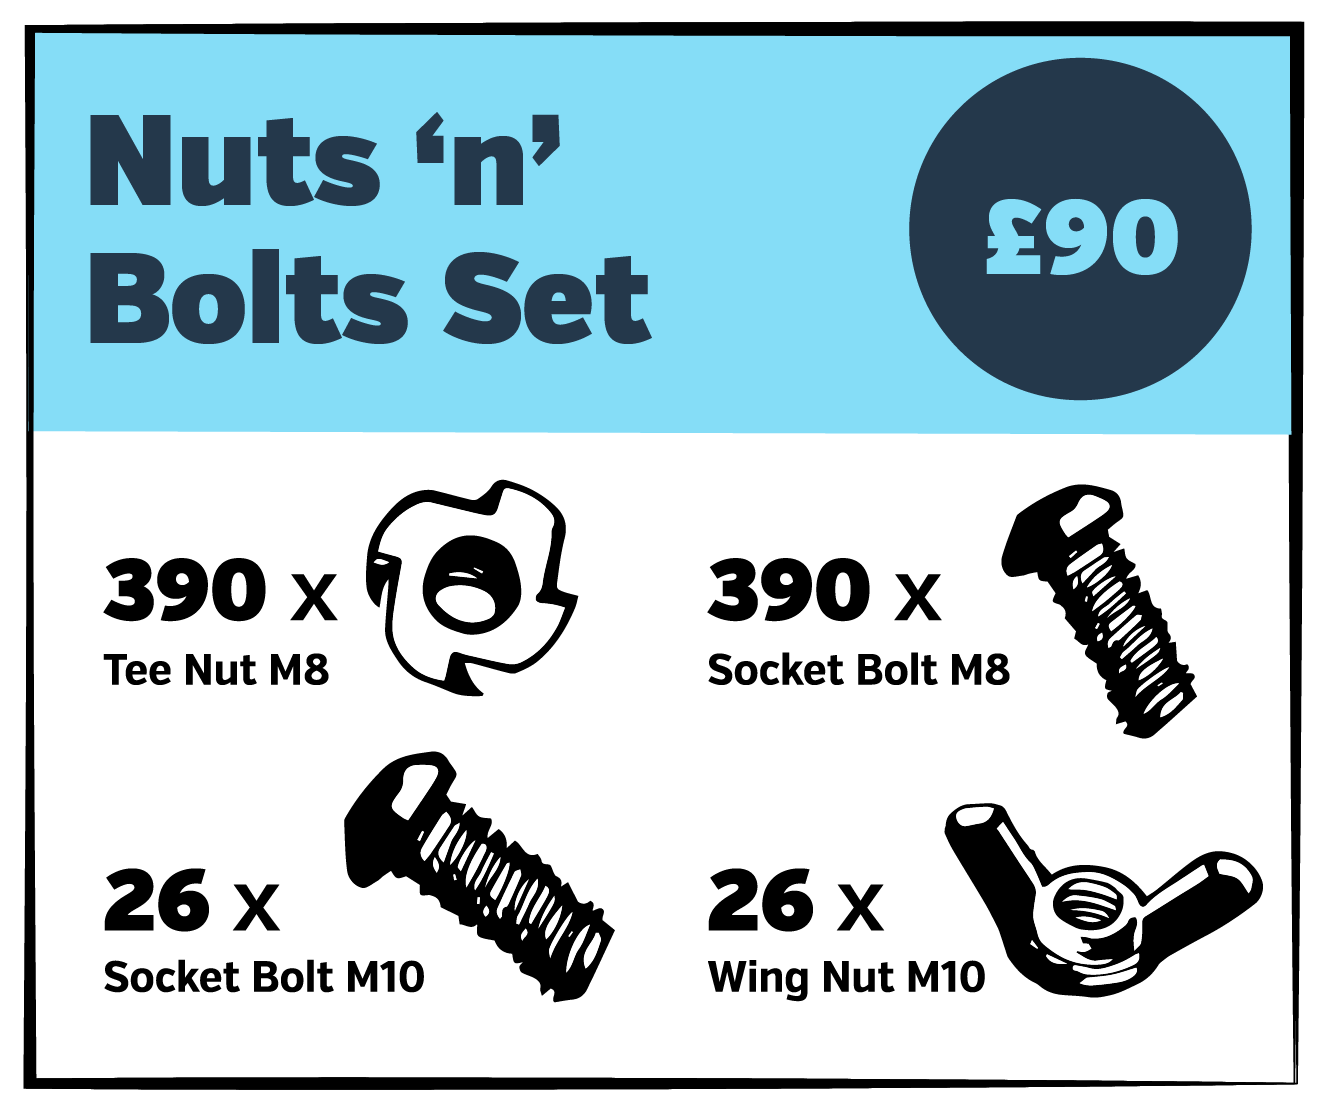 domemade_Nuts n Bolts_cost_2019.png